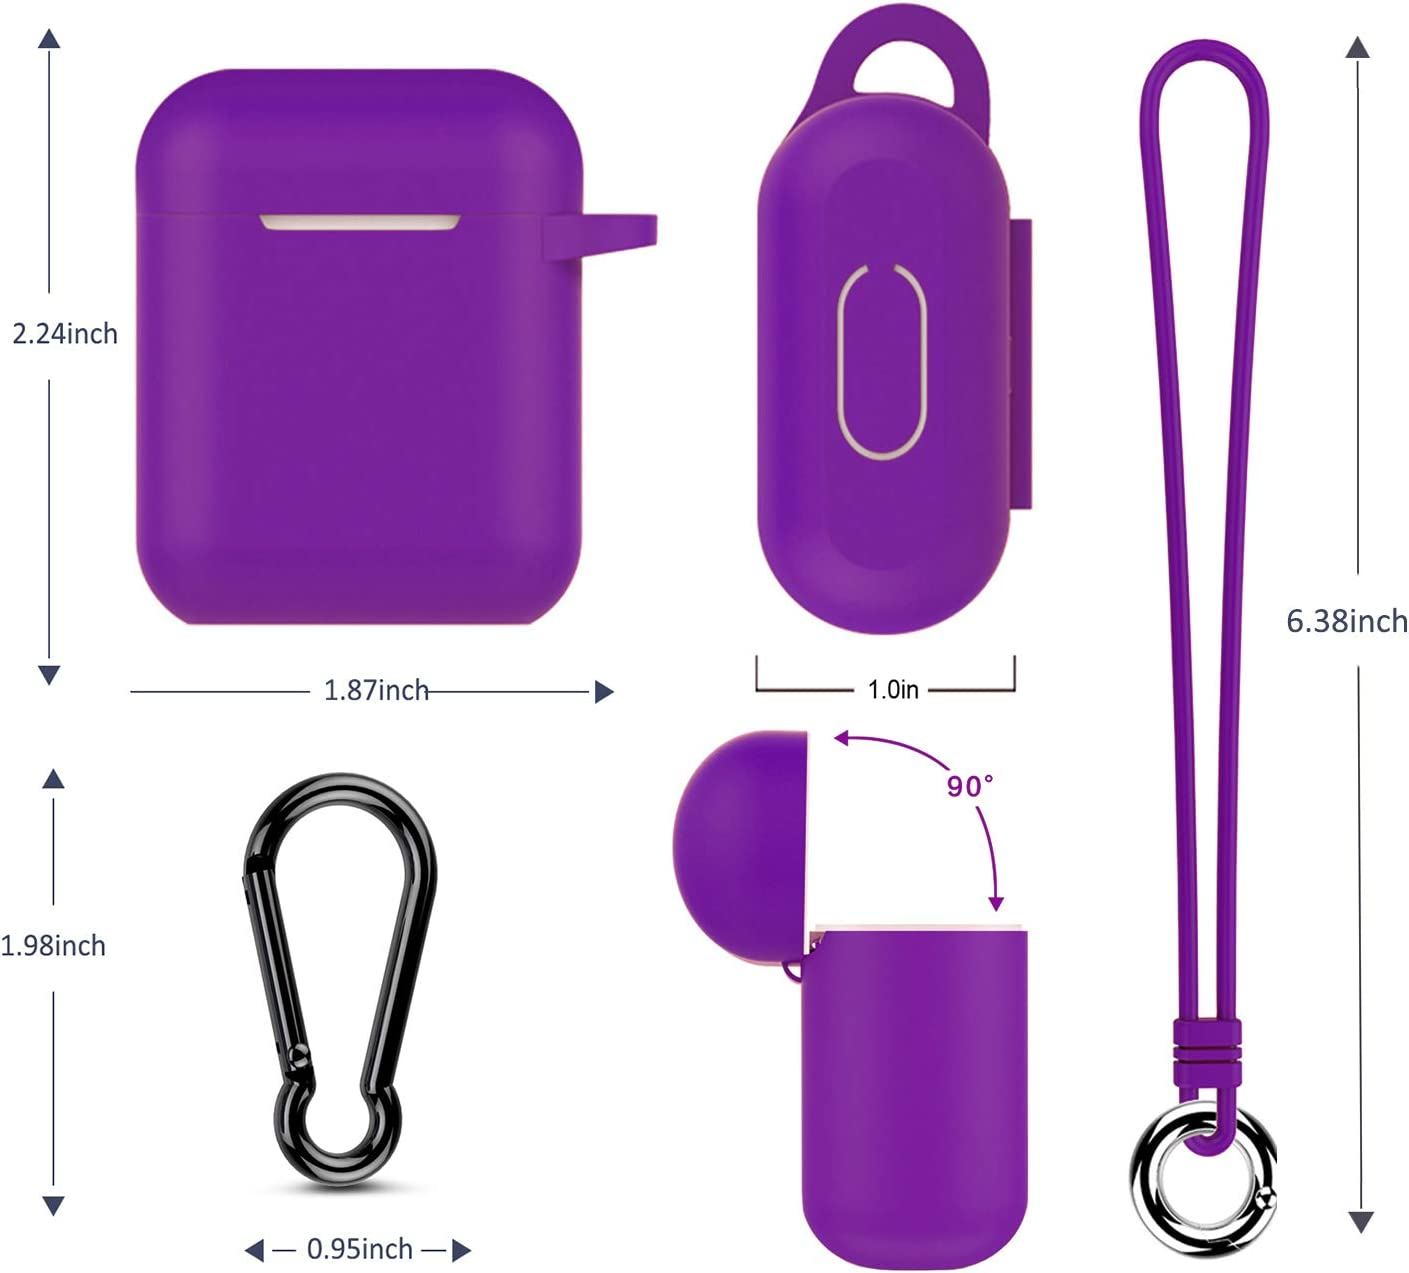 Front LED Visible Airpods Case Music tracker Thicken Protective Airpods 2 Cover Soft Silicone Earbuds Case Red with Carabiner//Anti-Lost Lanyard//EVA Storage Bag for Apple Airpods Gen 2